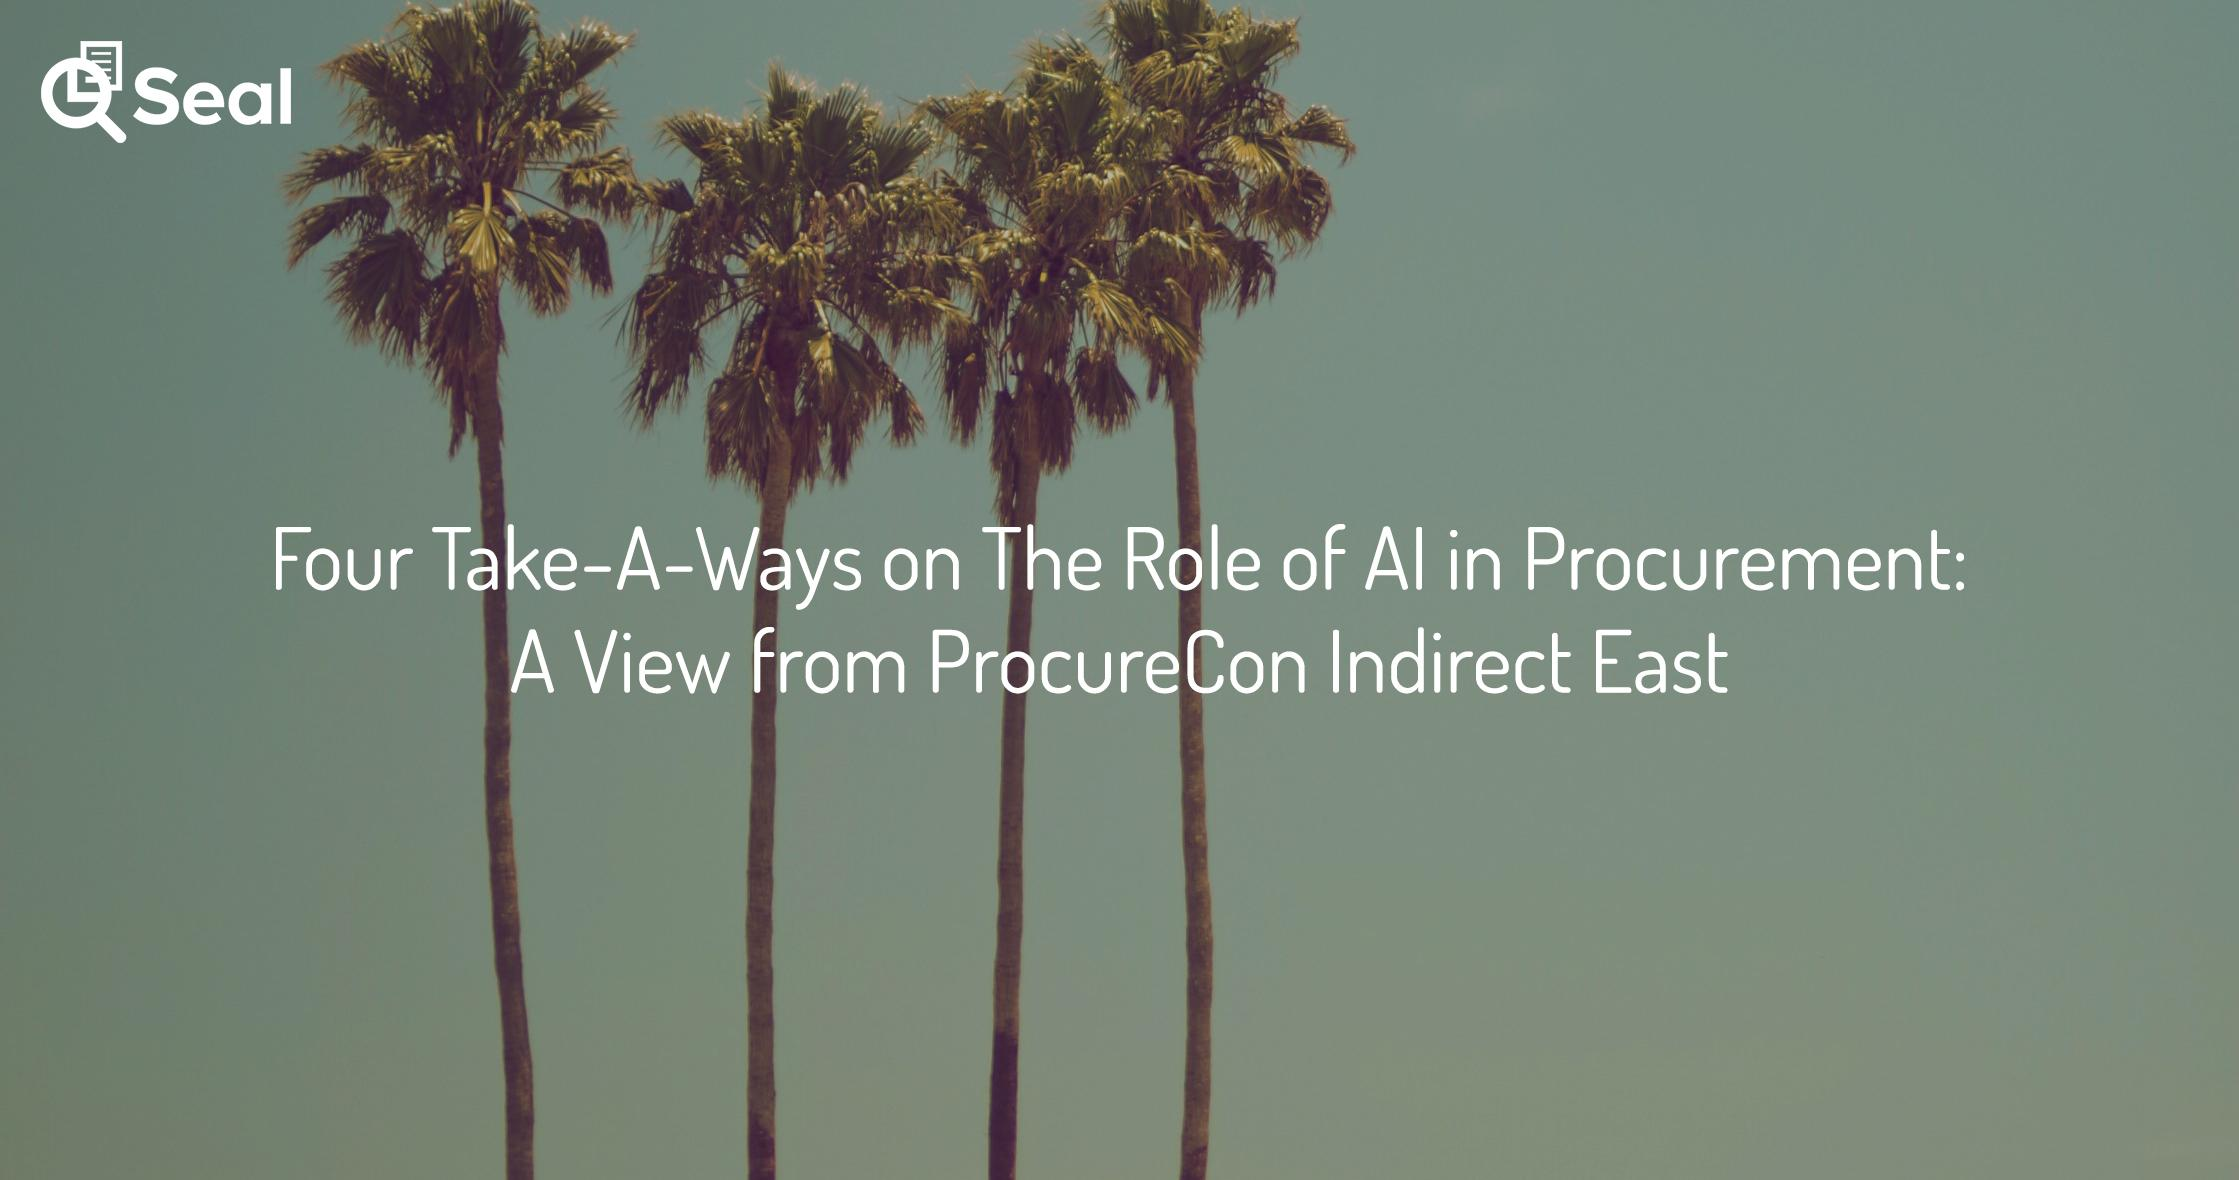 Four Take-A-Ways on The Role of AI in Procurement: A View from ProcureCon Indirect East